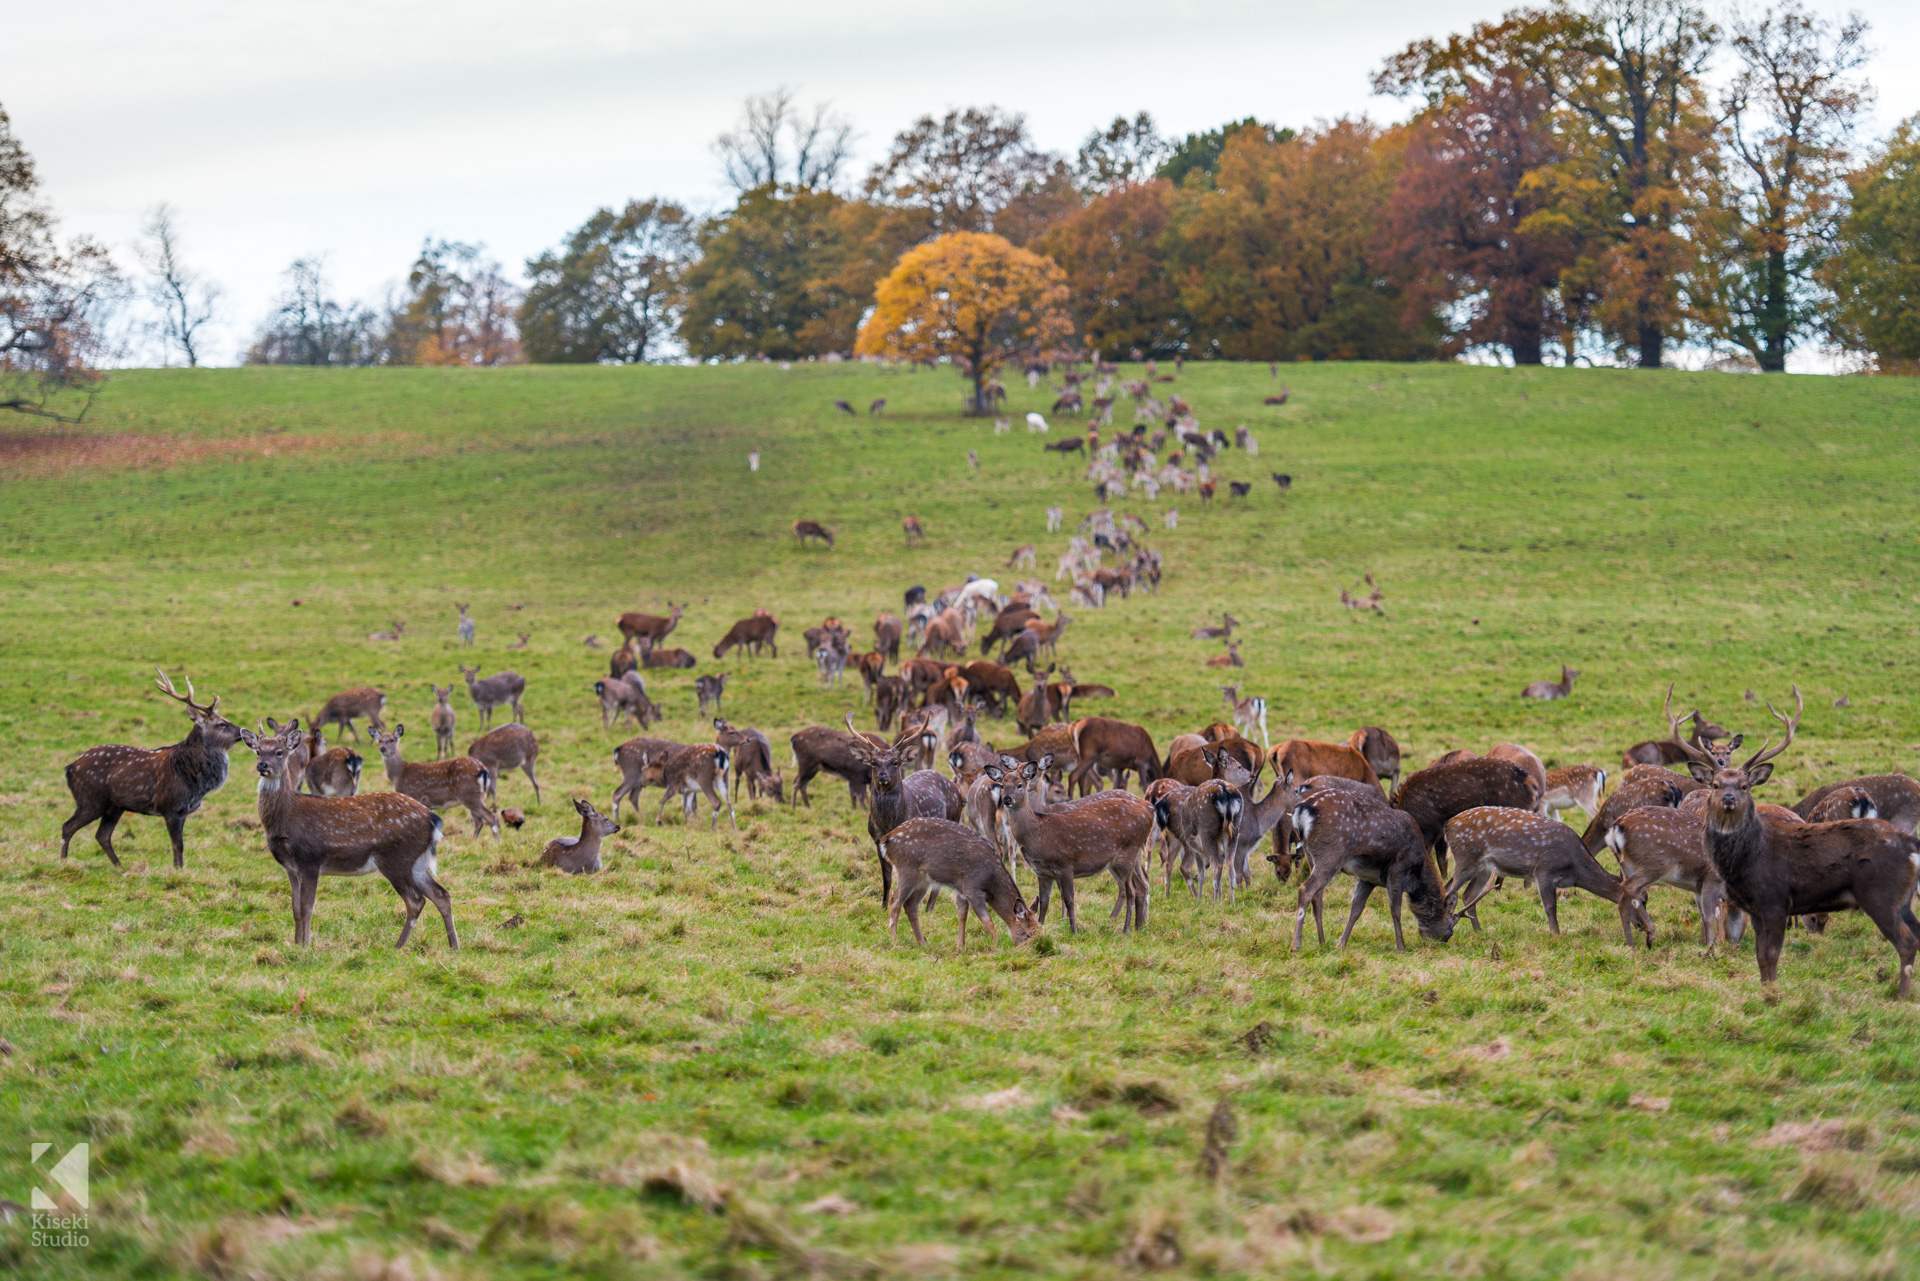 Studley Royal Park Deer eating together as a group in a line